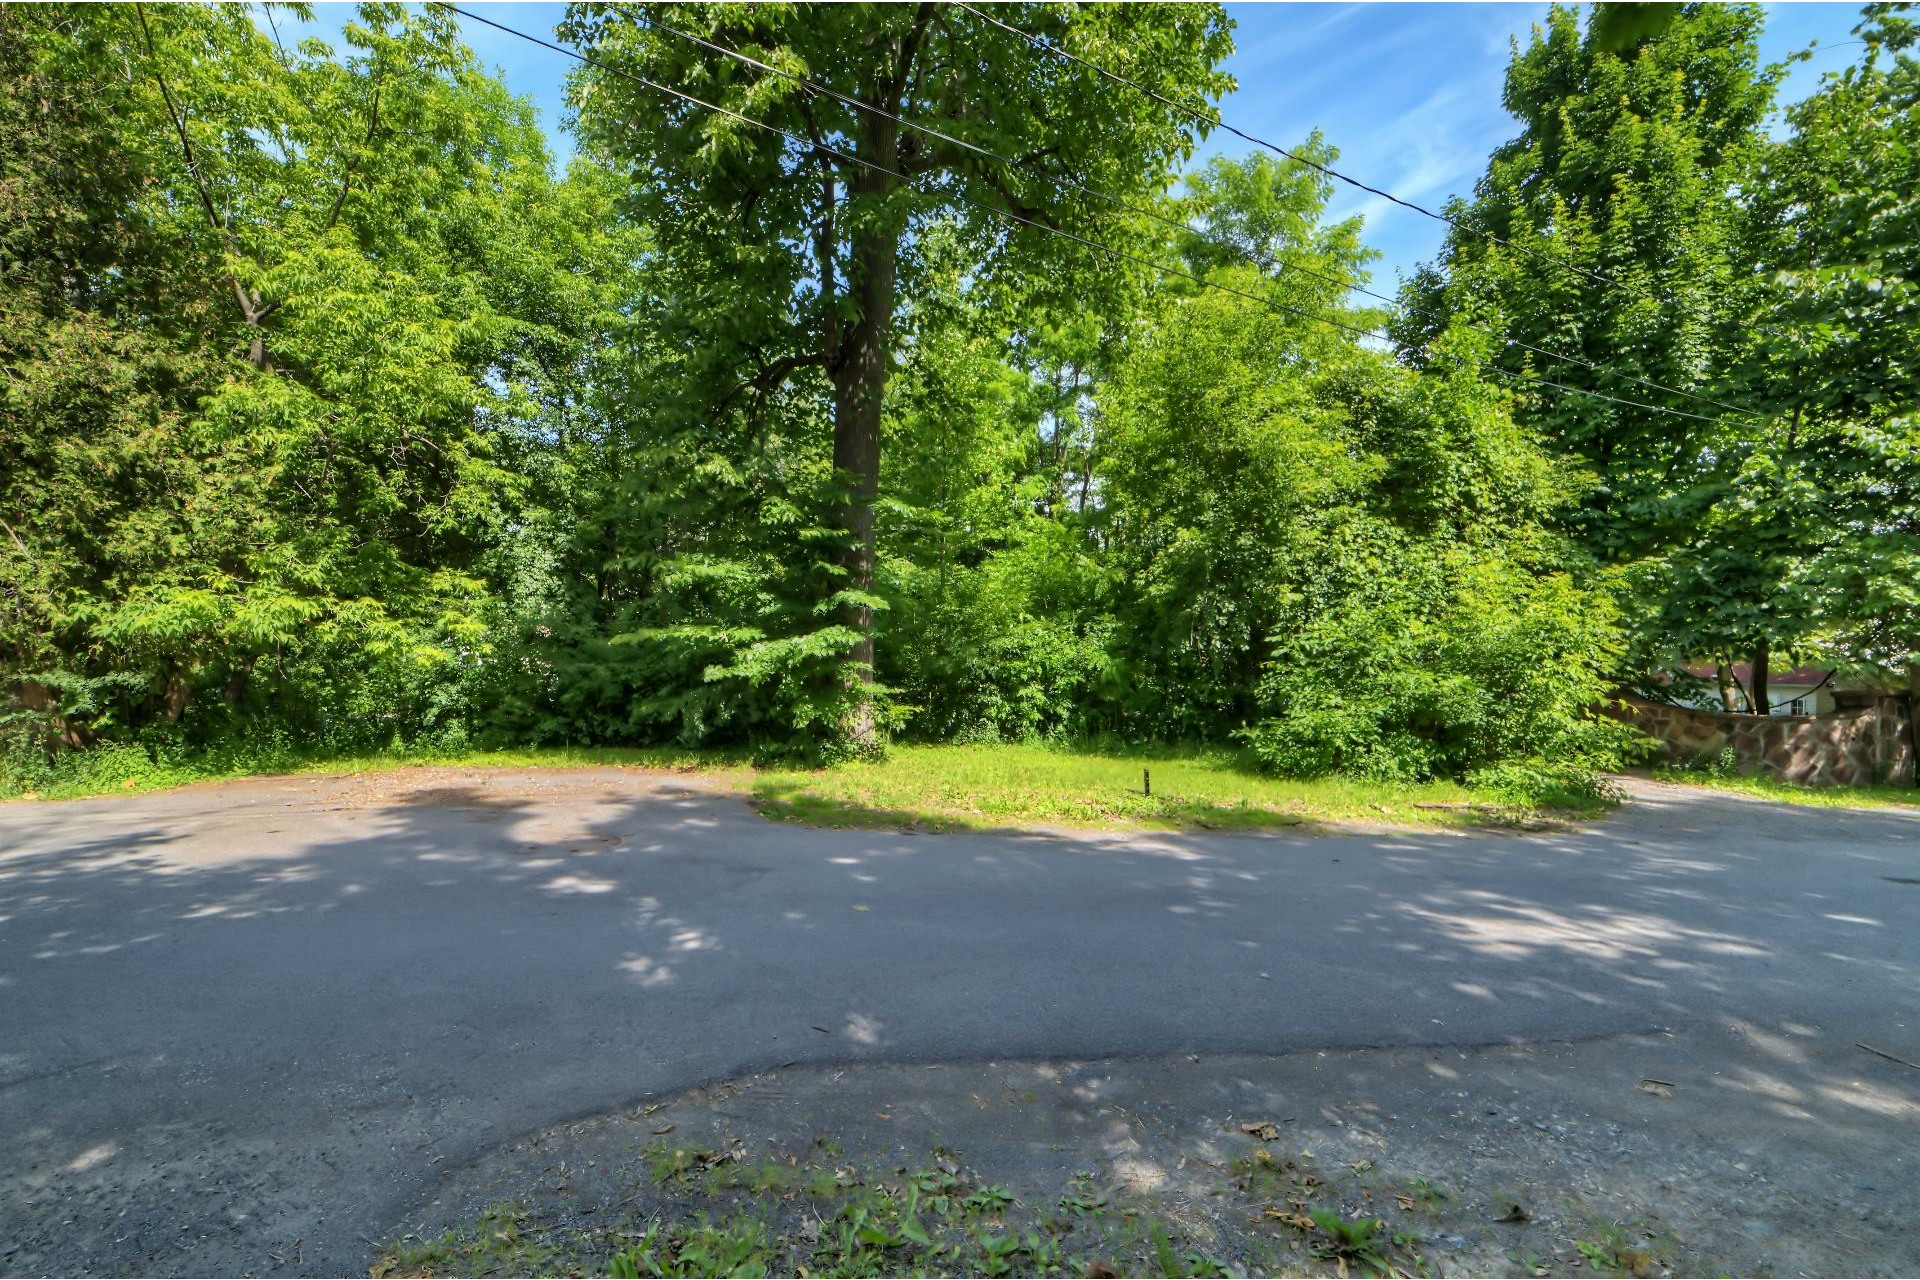 image 7 - Land For sale Vaudreuil-Dorion